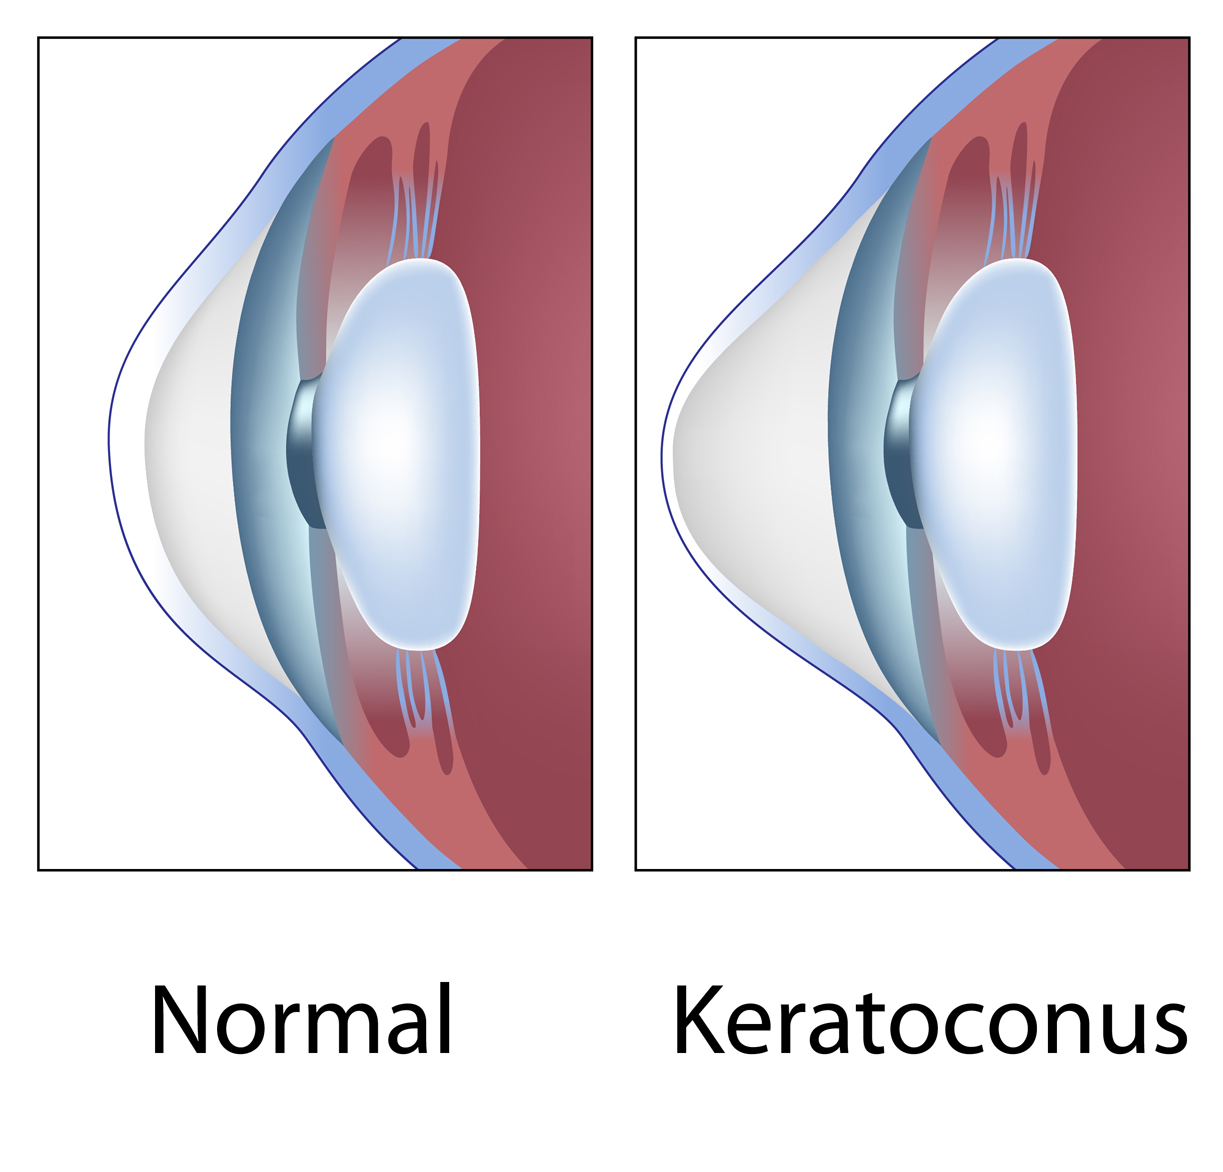 keratoconus image and normal eye image